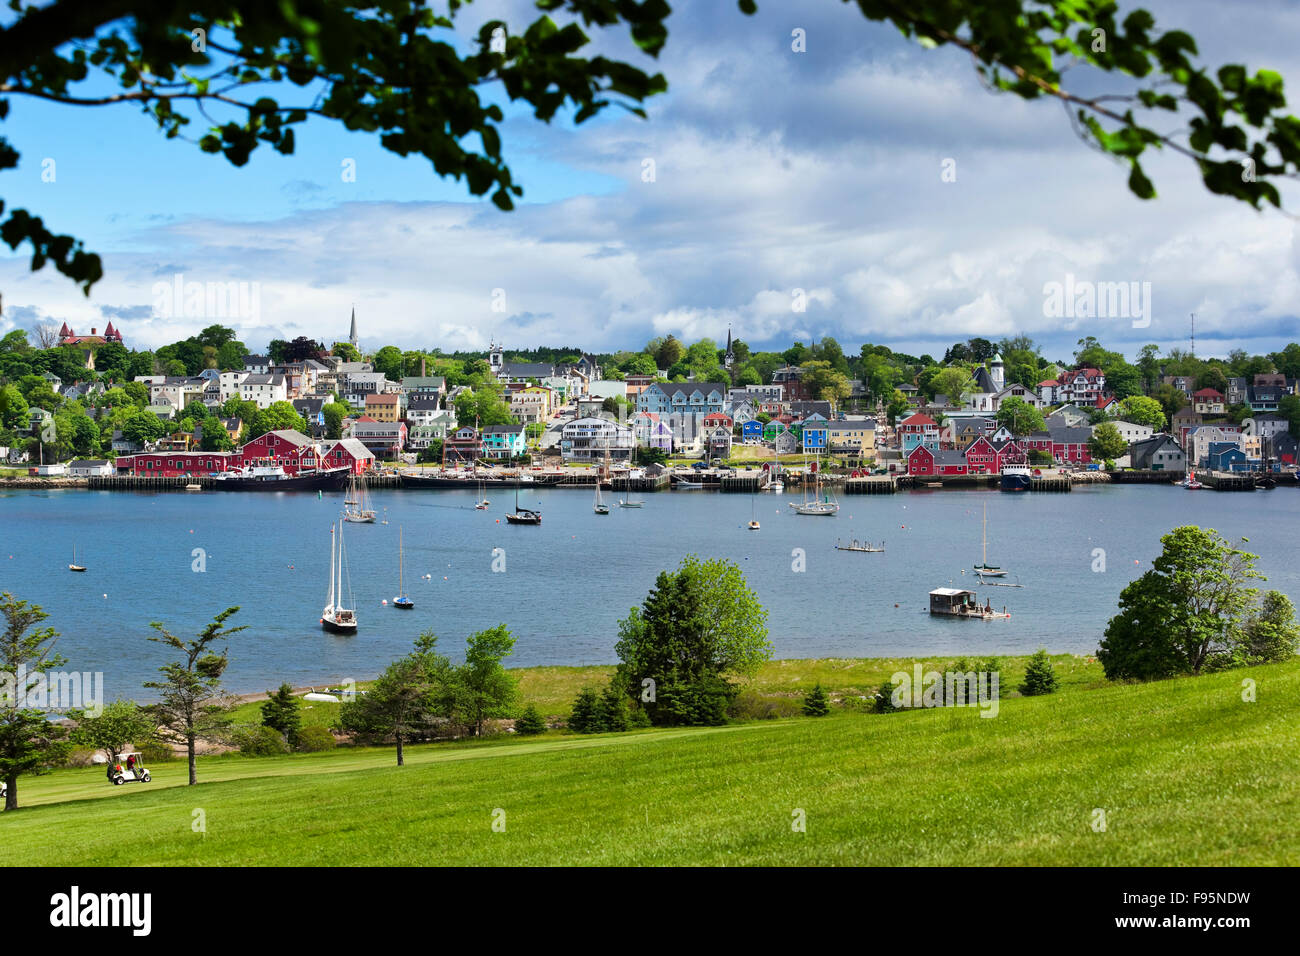 Overall view of the town of Lunenburg, Nova Scotia, from the Bluenose Golf Course. - Stock Image